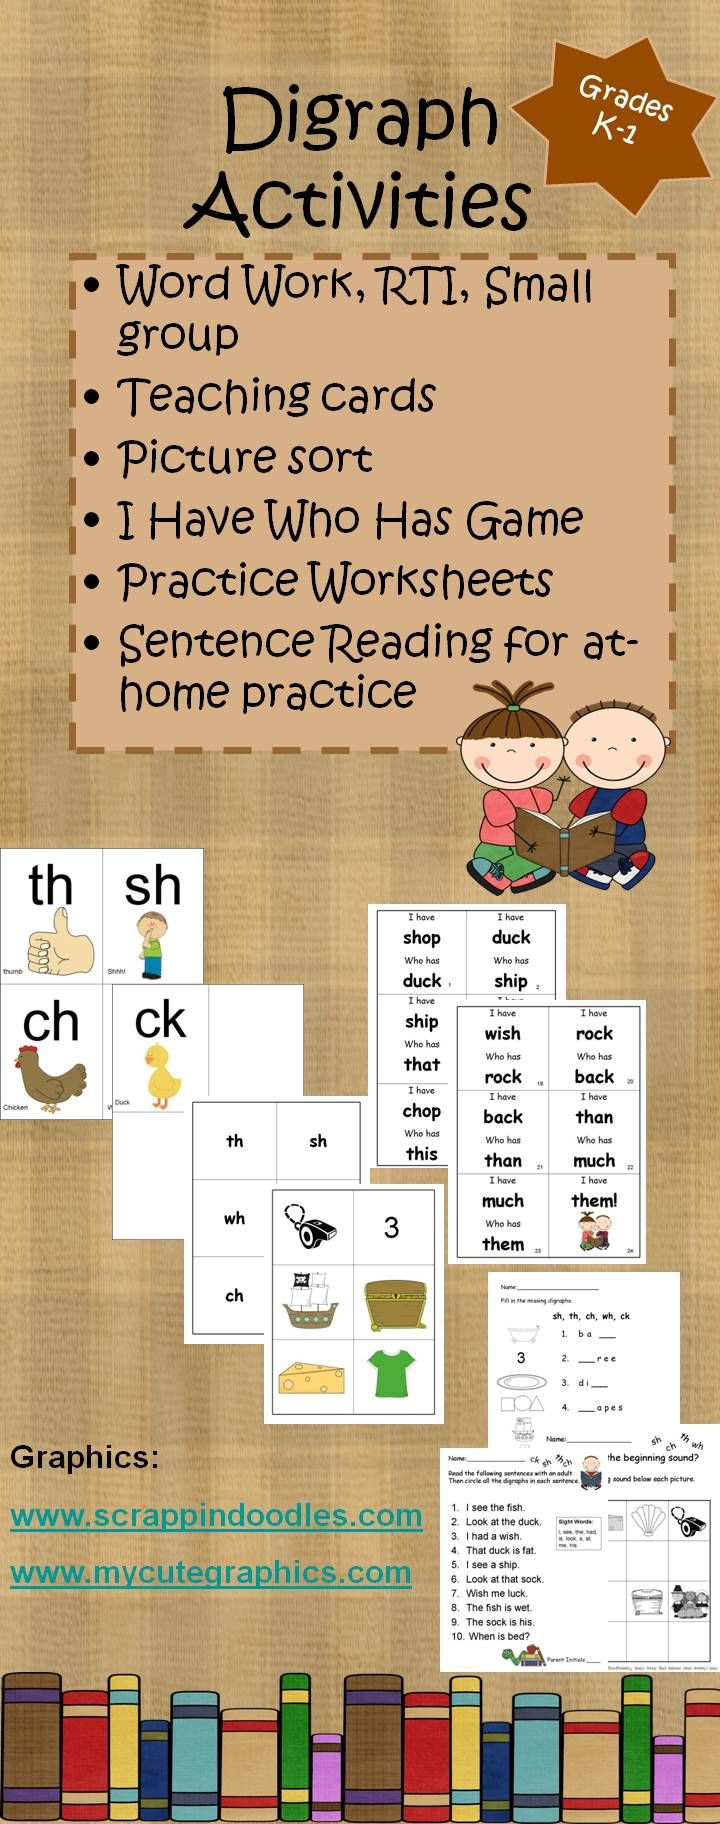 17 best images about 1st grade digraphs on pinterest initials snowball and miss kindergarten. Black Bedroom Furniture Sets. Home Design Ideas